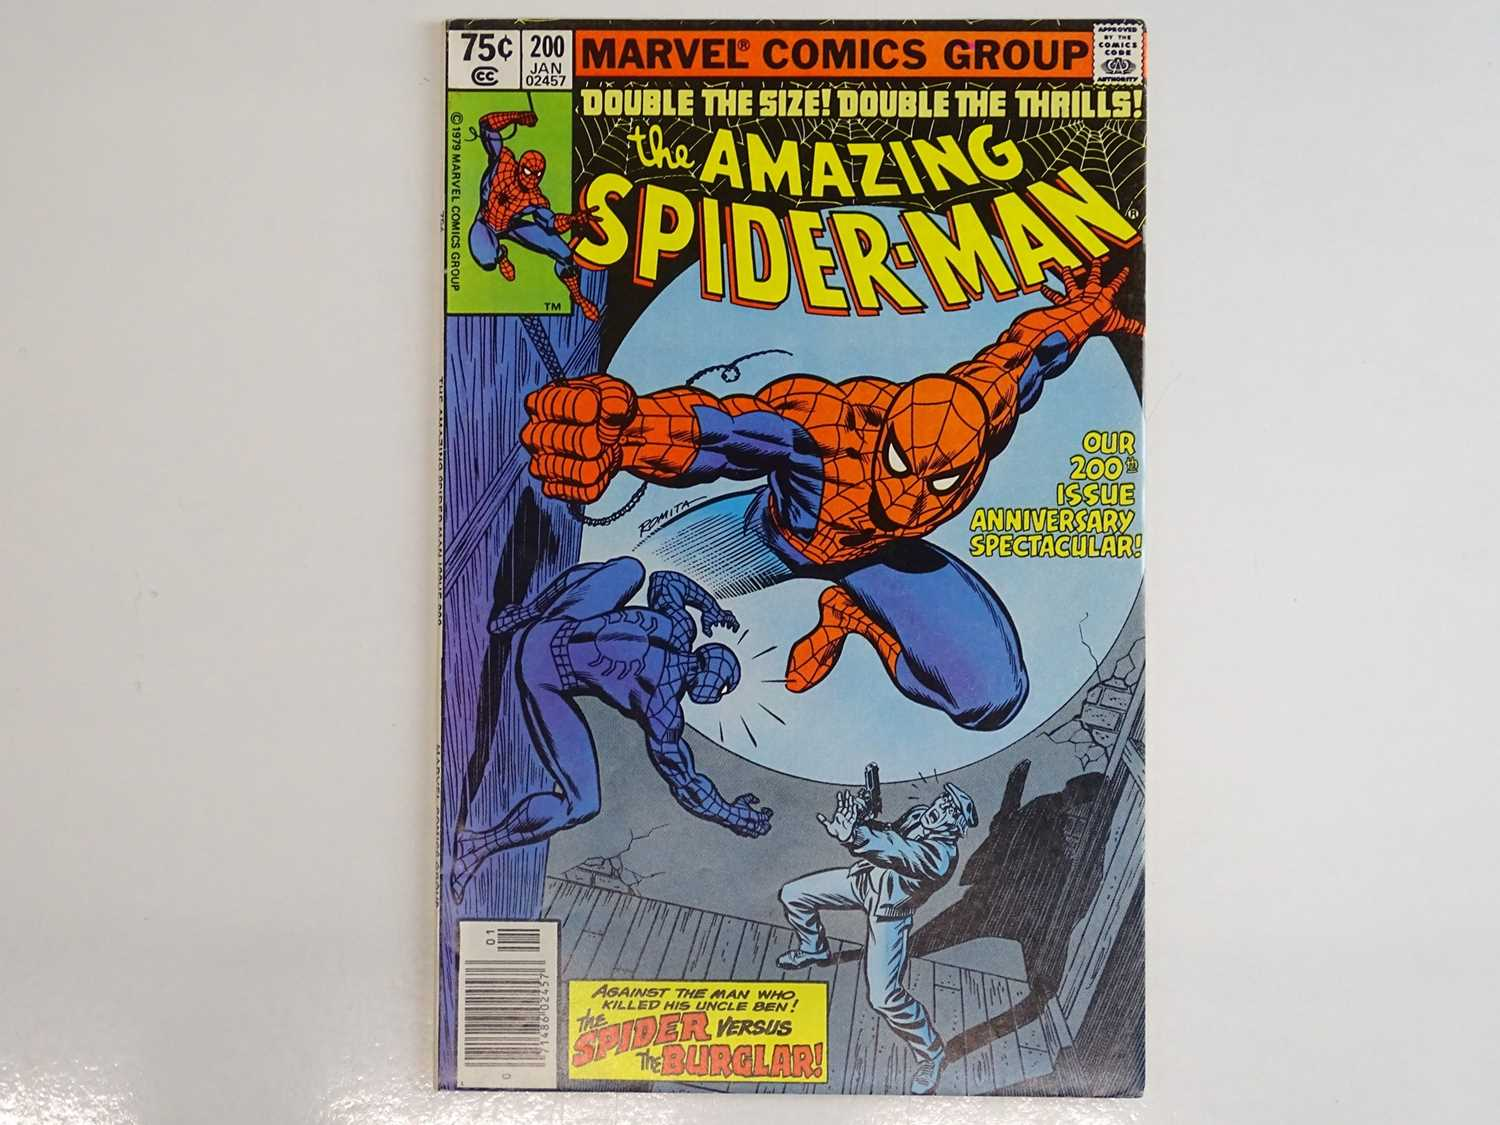 AMAZING SPIDER-MAN #200 - (1980 - MARVEL) - Spider-Man's origin is retold and he confronts the